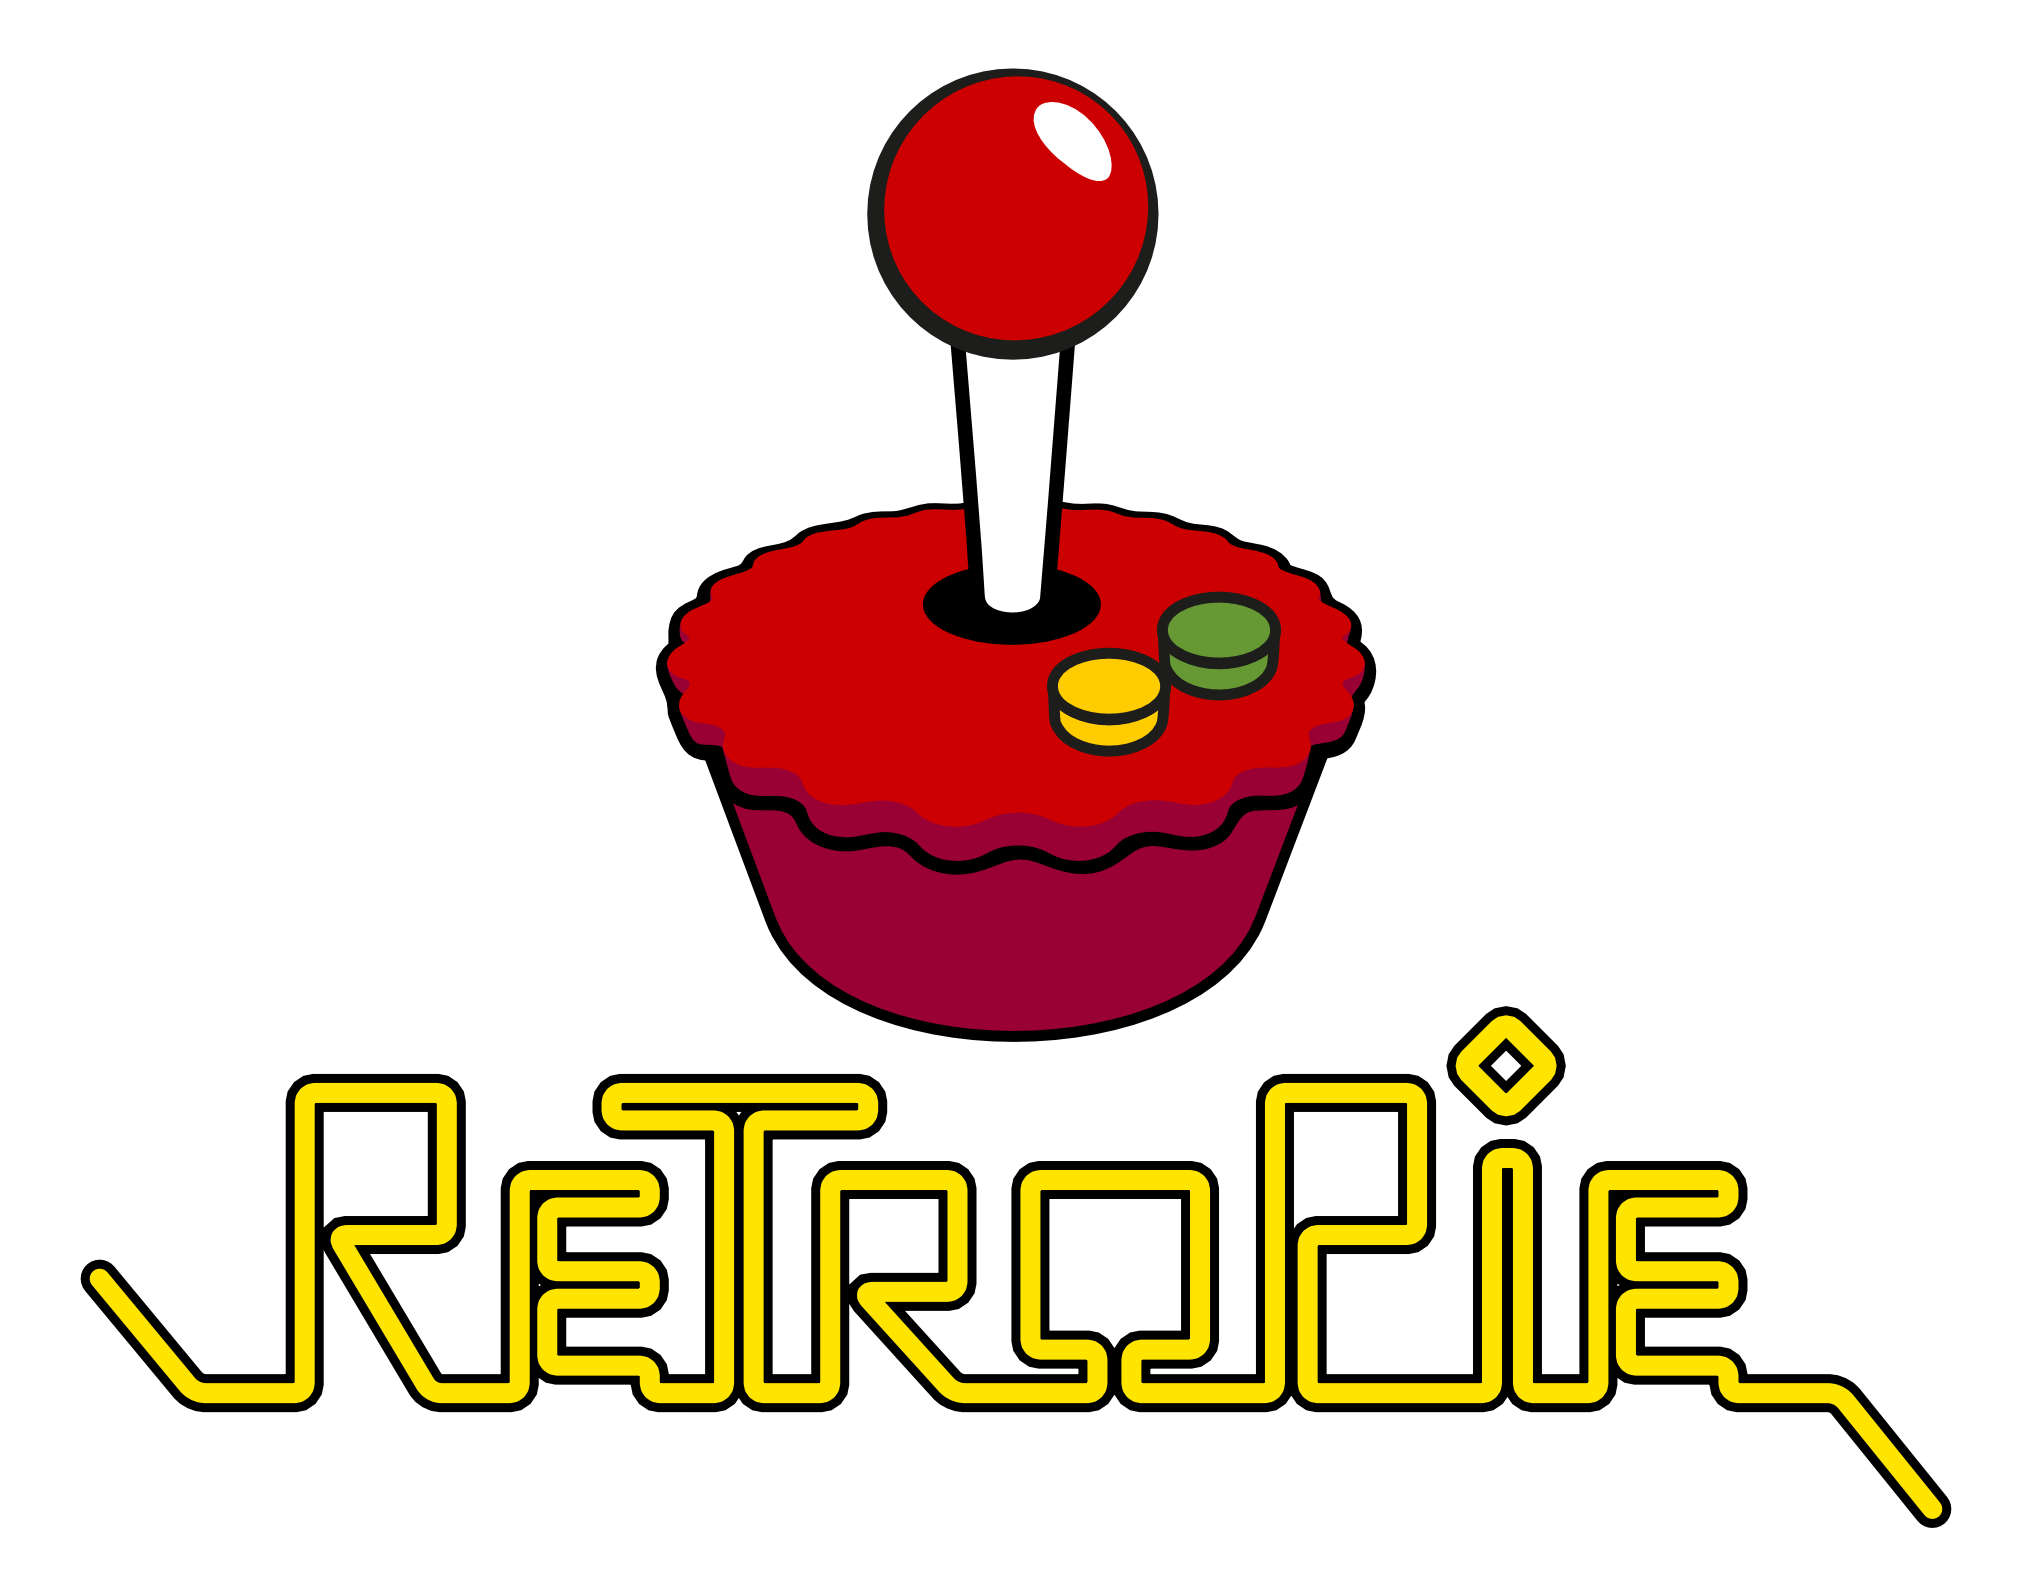 How to Create a RetroPie on Raspberry Pi – Graphical Guide